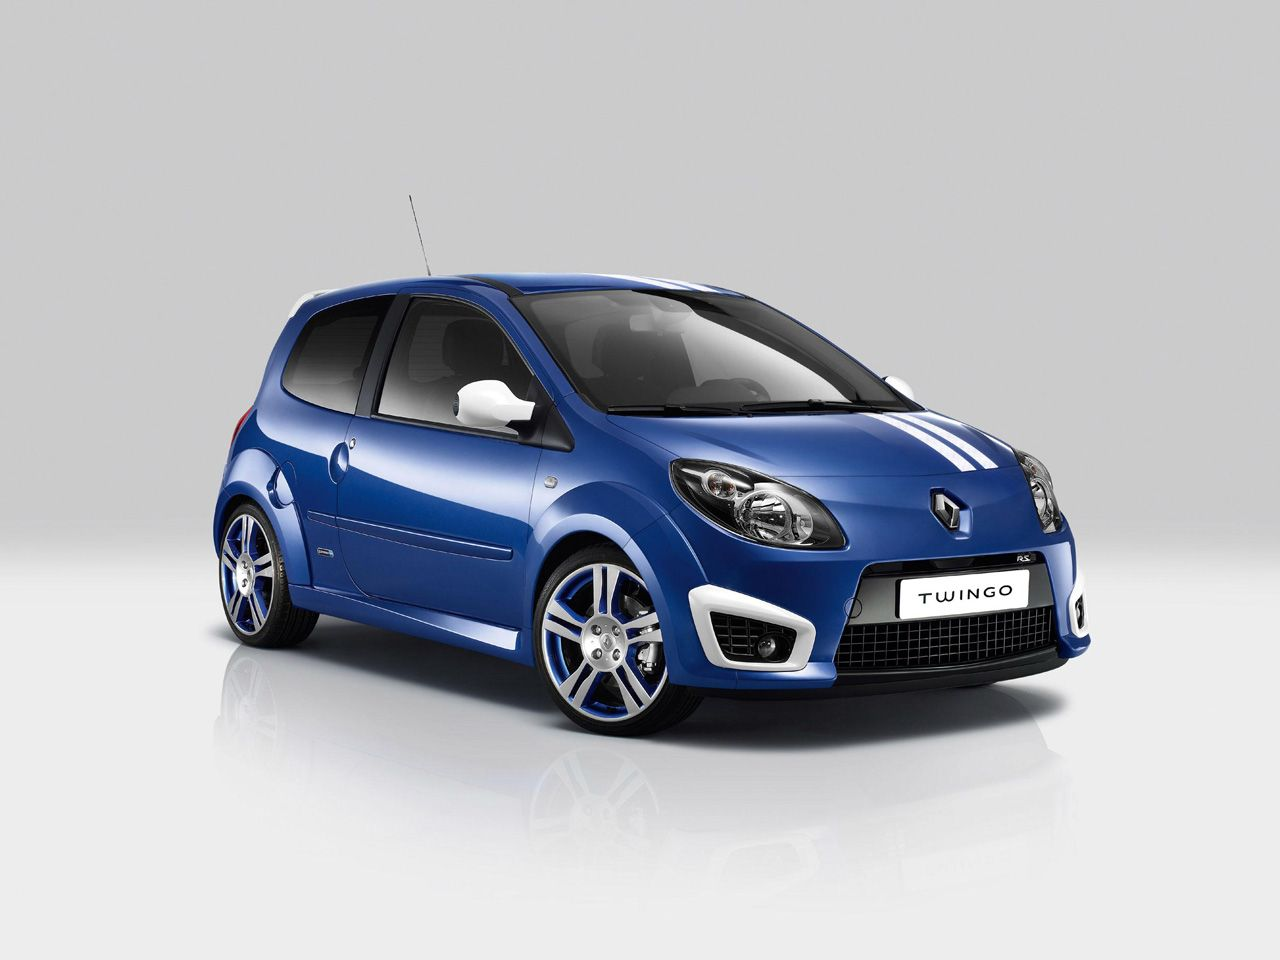 Renault Twingo Rs Gordini Twingo Renault Best Small Cars Motor Car